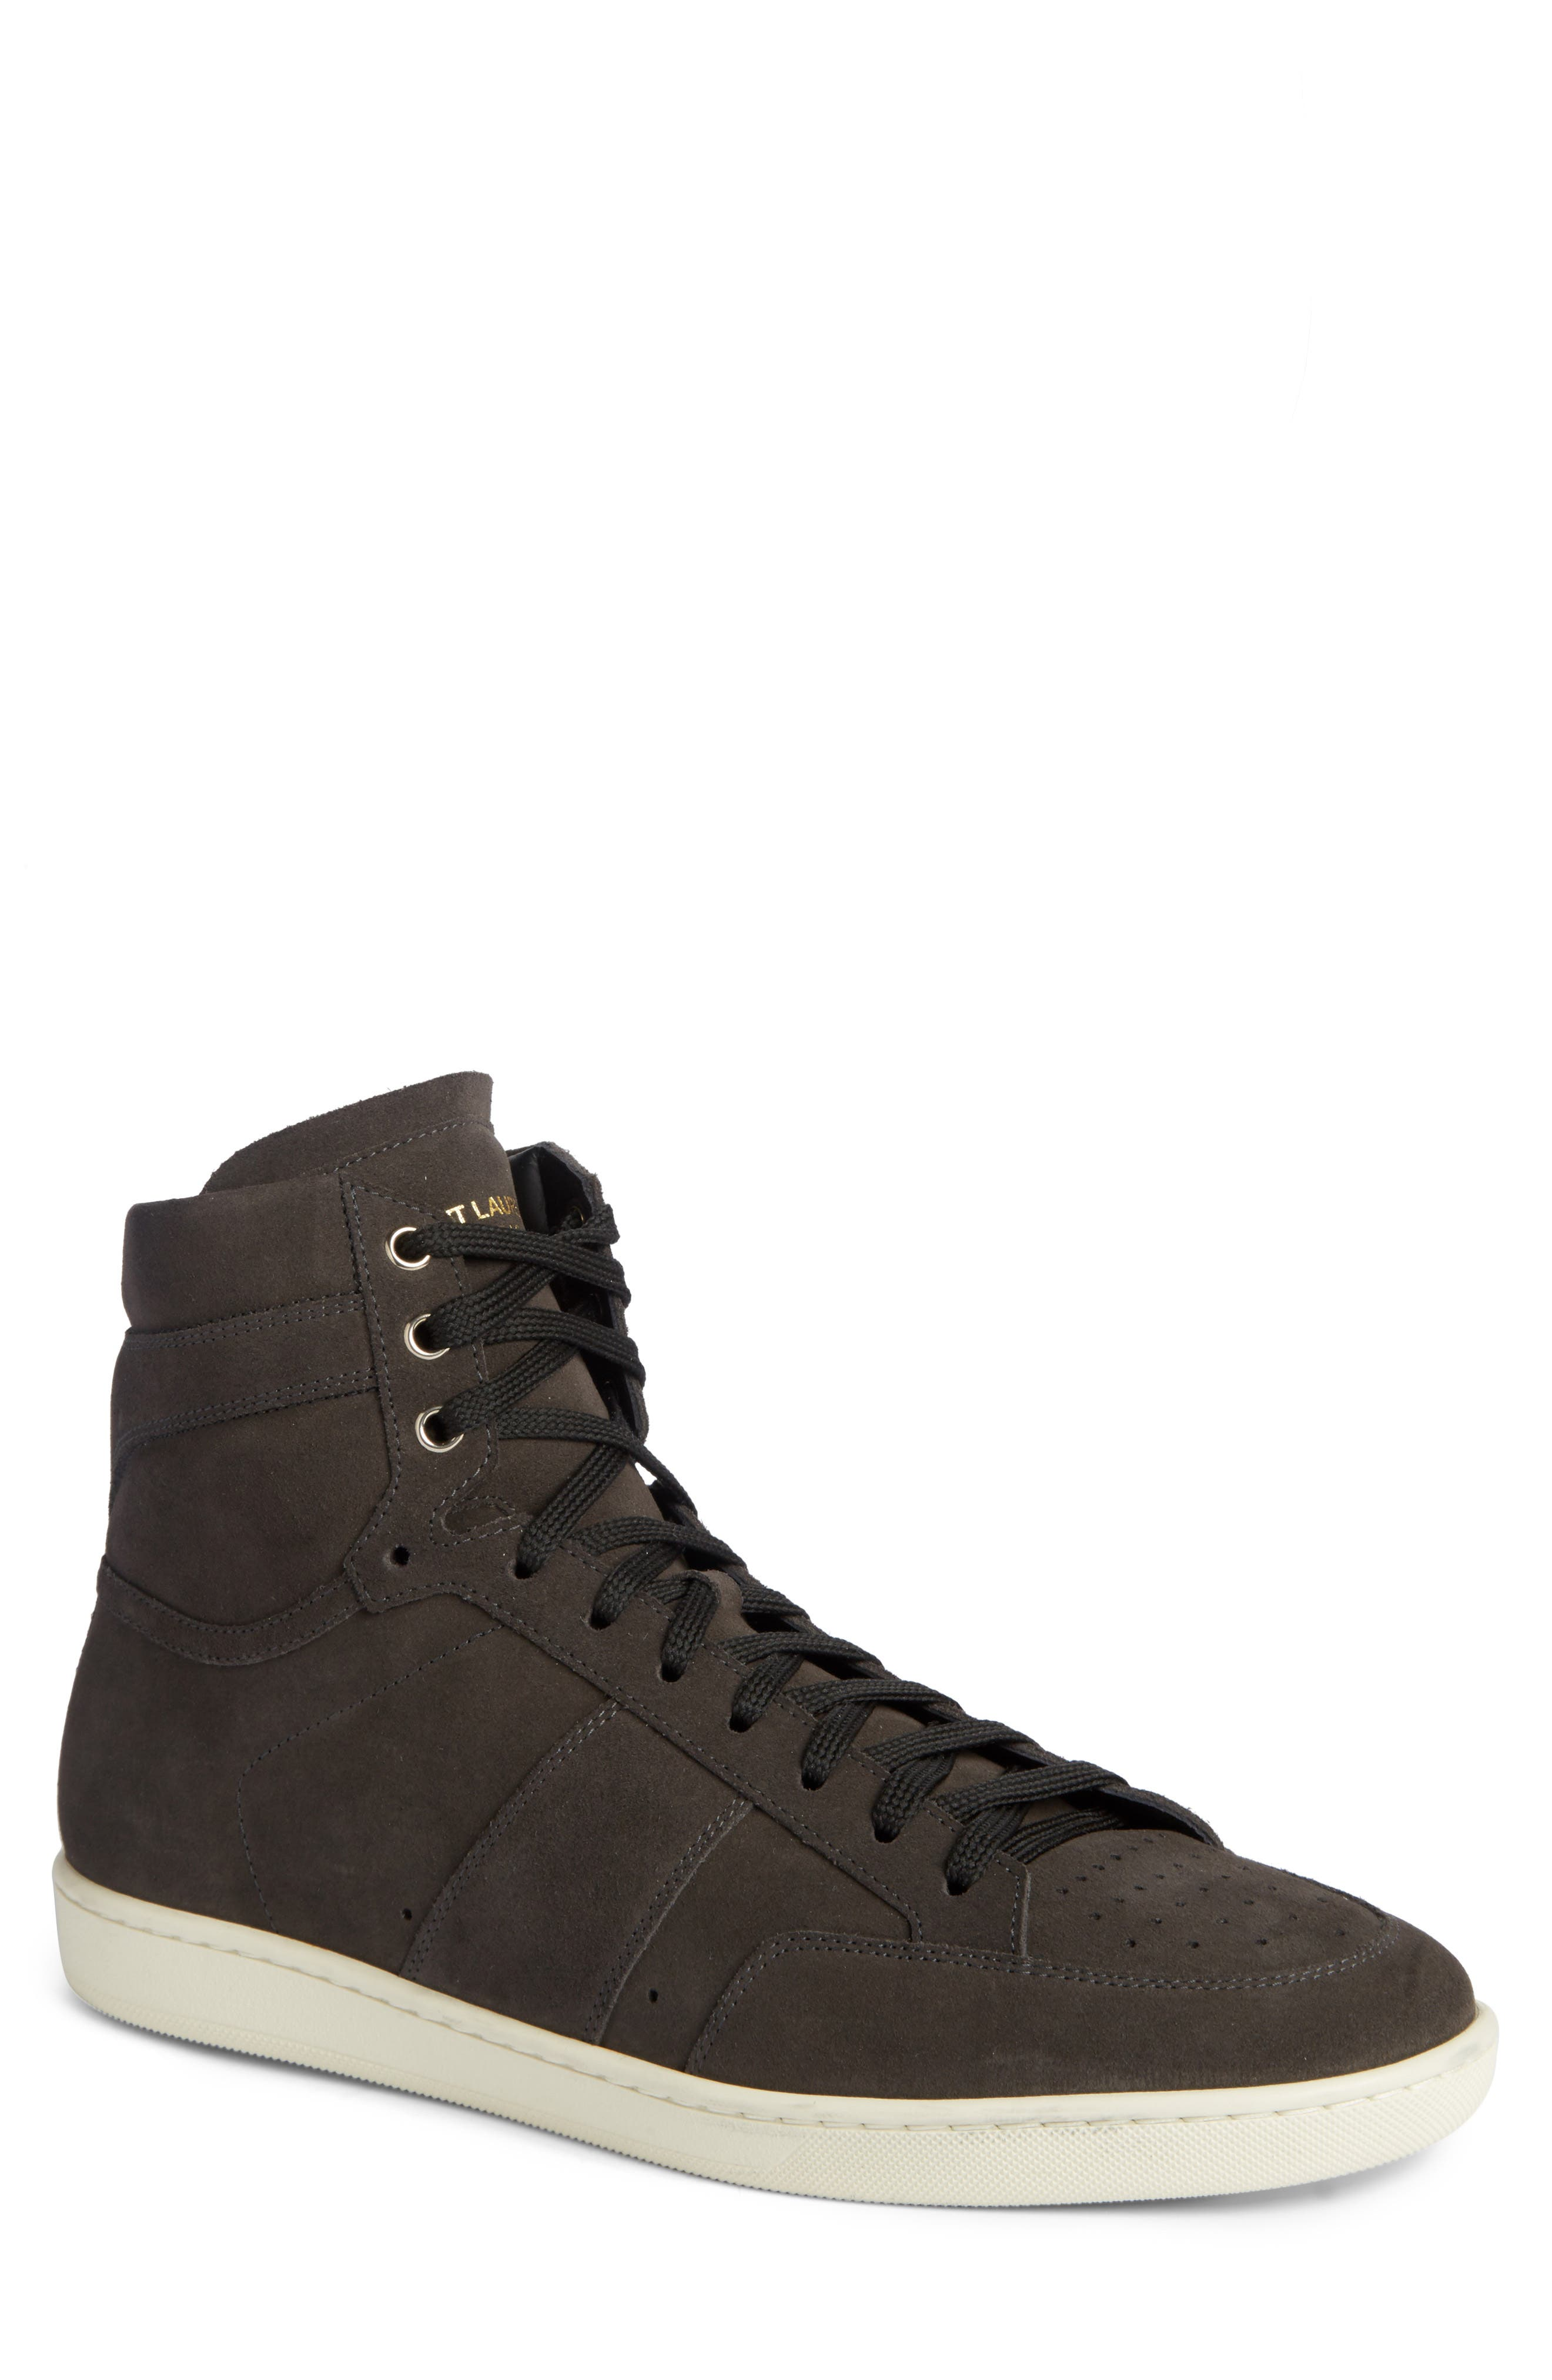 Saint Laurent High Top Sneaker (Men)